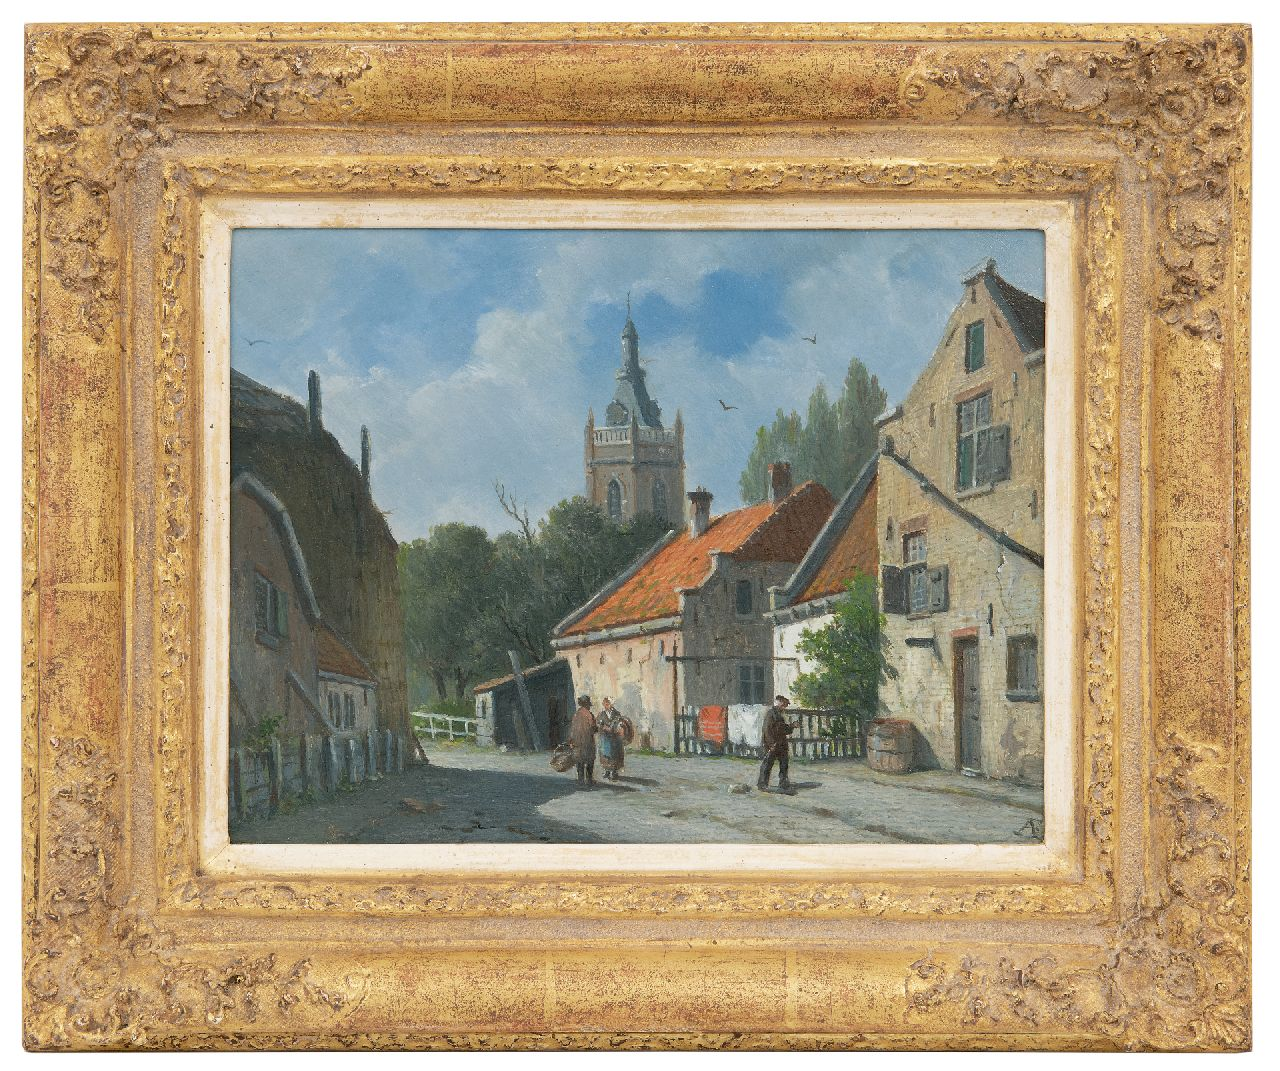 Eversen A.  | Adrianus Eversen | Paintings offered for sale | A sunny town view  in Overschie, oil on panel 20.7 x 26.8 cm, signed l.r. with monogram